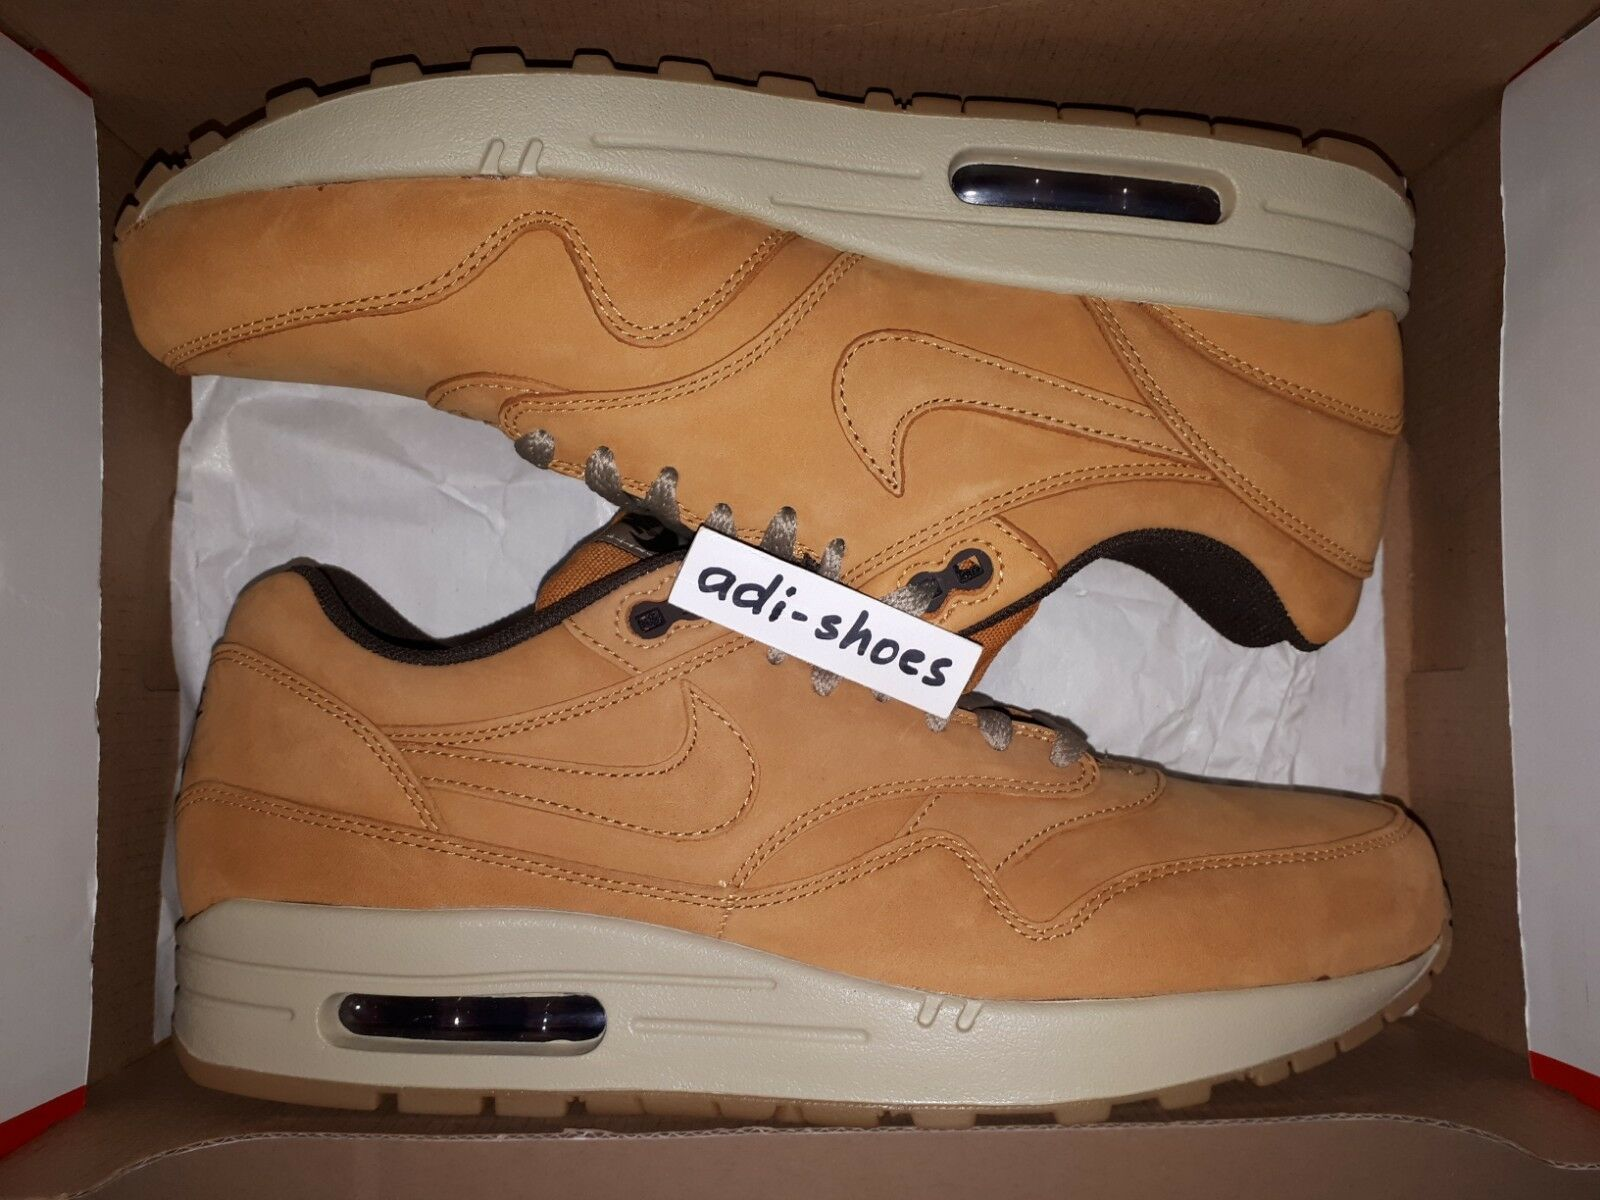 NIKE AIR MAX 1 LTR LEATHER PREMIUM BRONZE WHEAT US 7 9,5 10 deluxe 705282-700 90